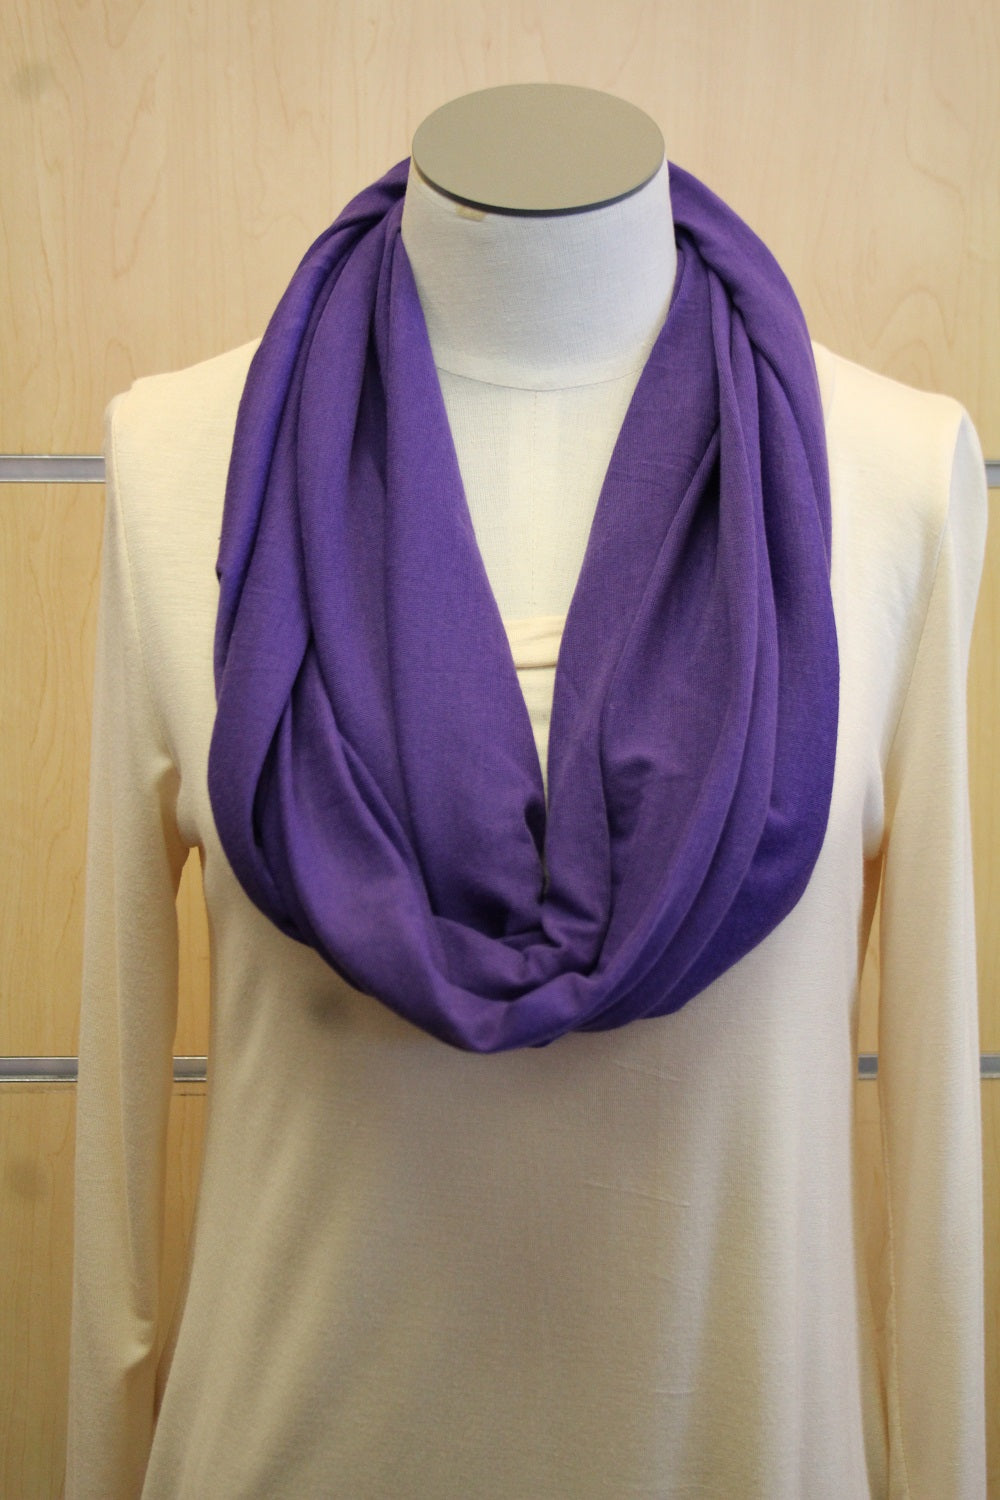 ADO | Infinity Deep Purple Scarf - All Decd Out